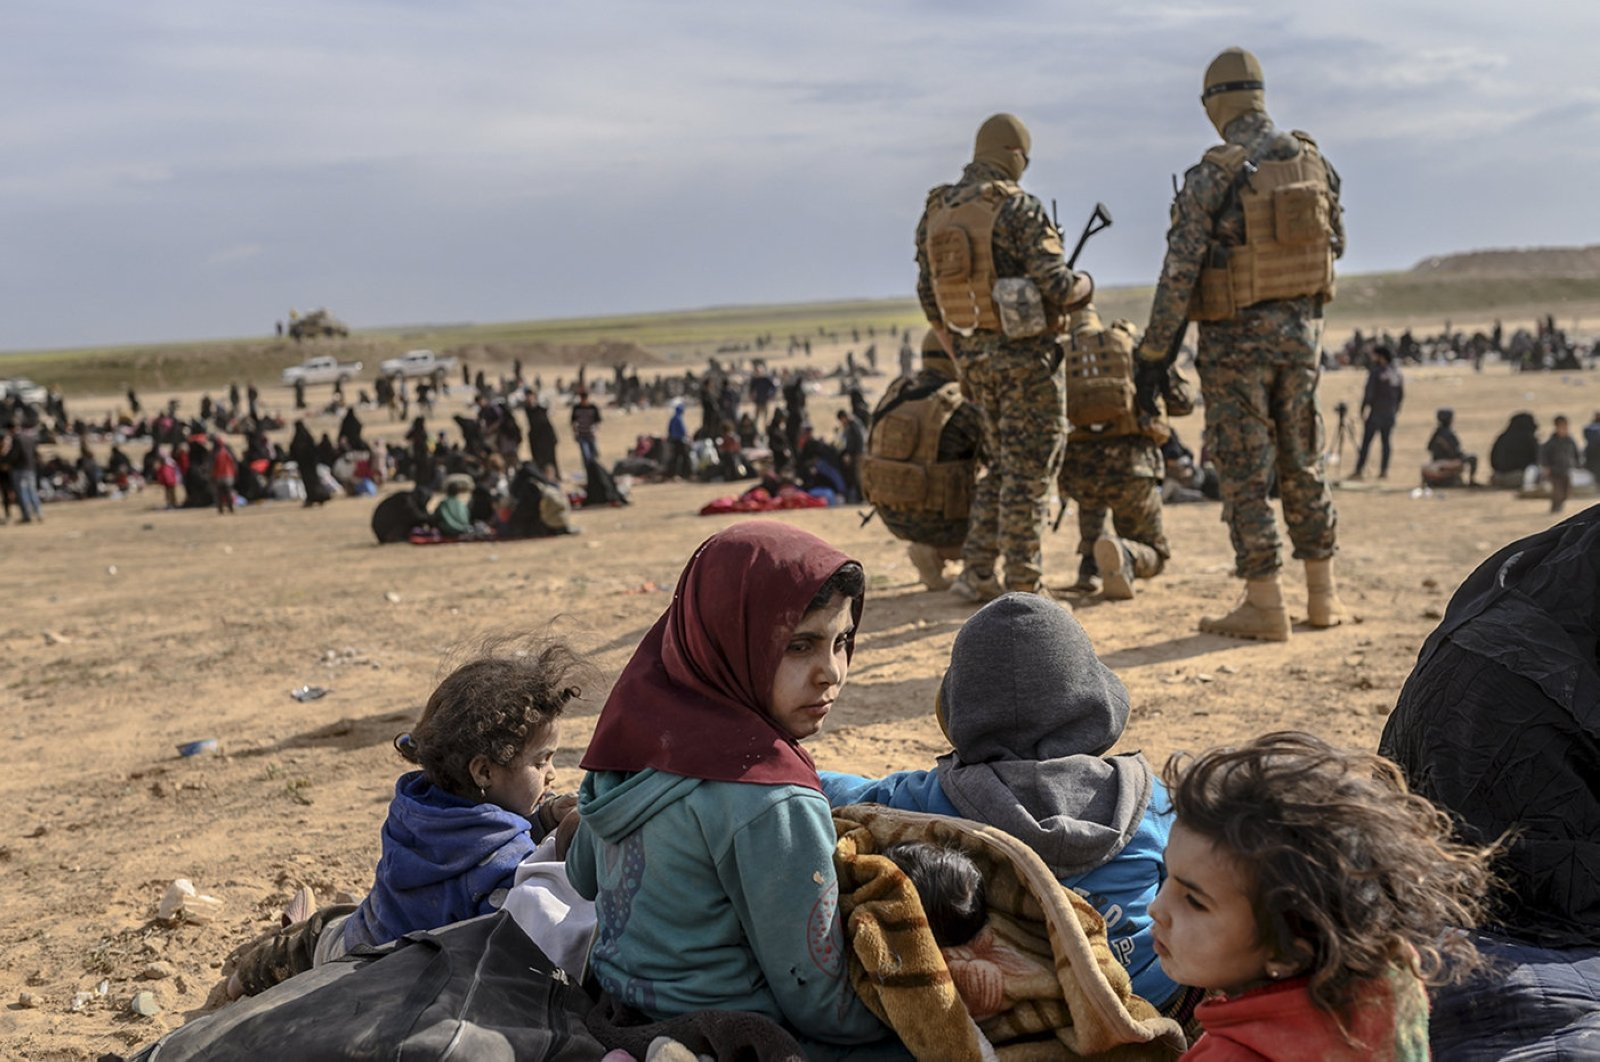 Civilians evacuated from the Daesh terror group's embattled holdout of Baghouz wait at a screening area held by the U.S.-backed YPG/PKK, in the eastern Syrian province of Deir el-Zour, March 5, 2019. (AFP Photo)